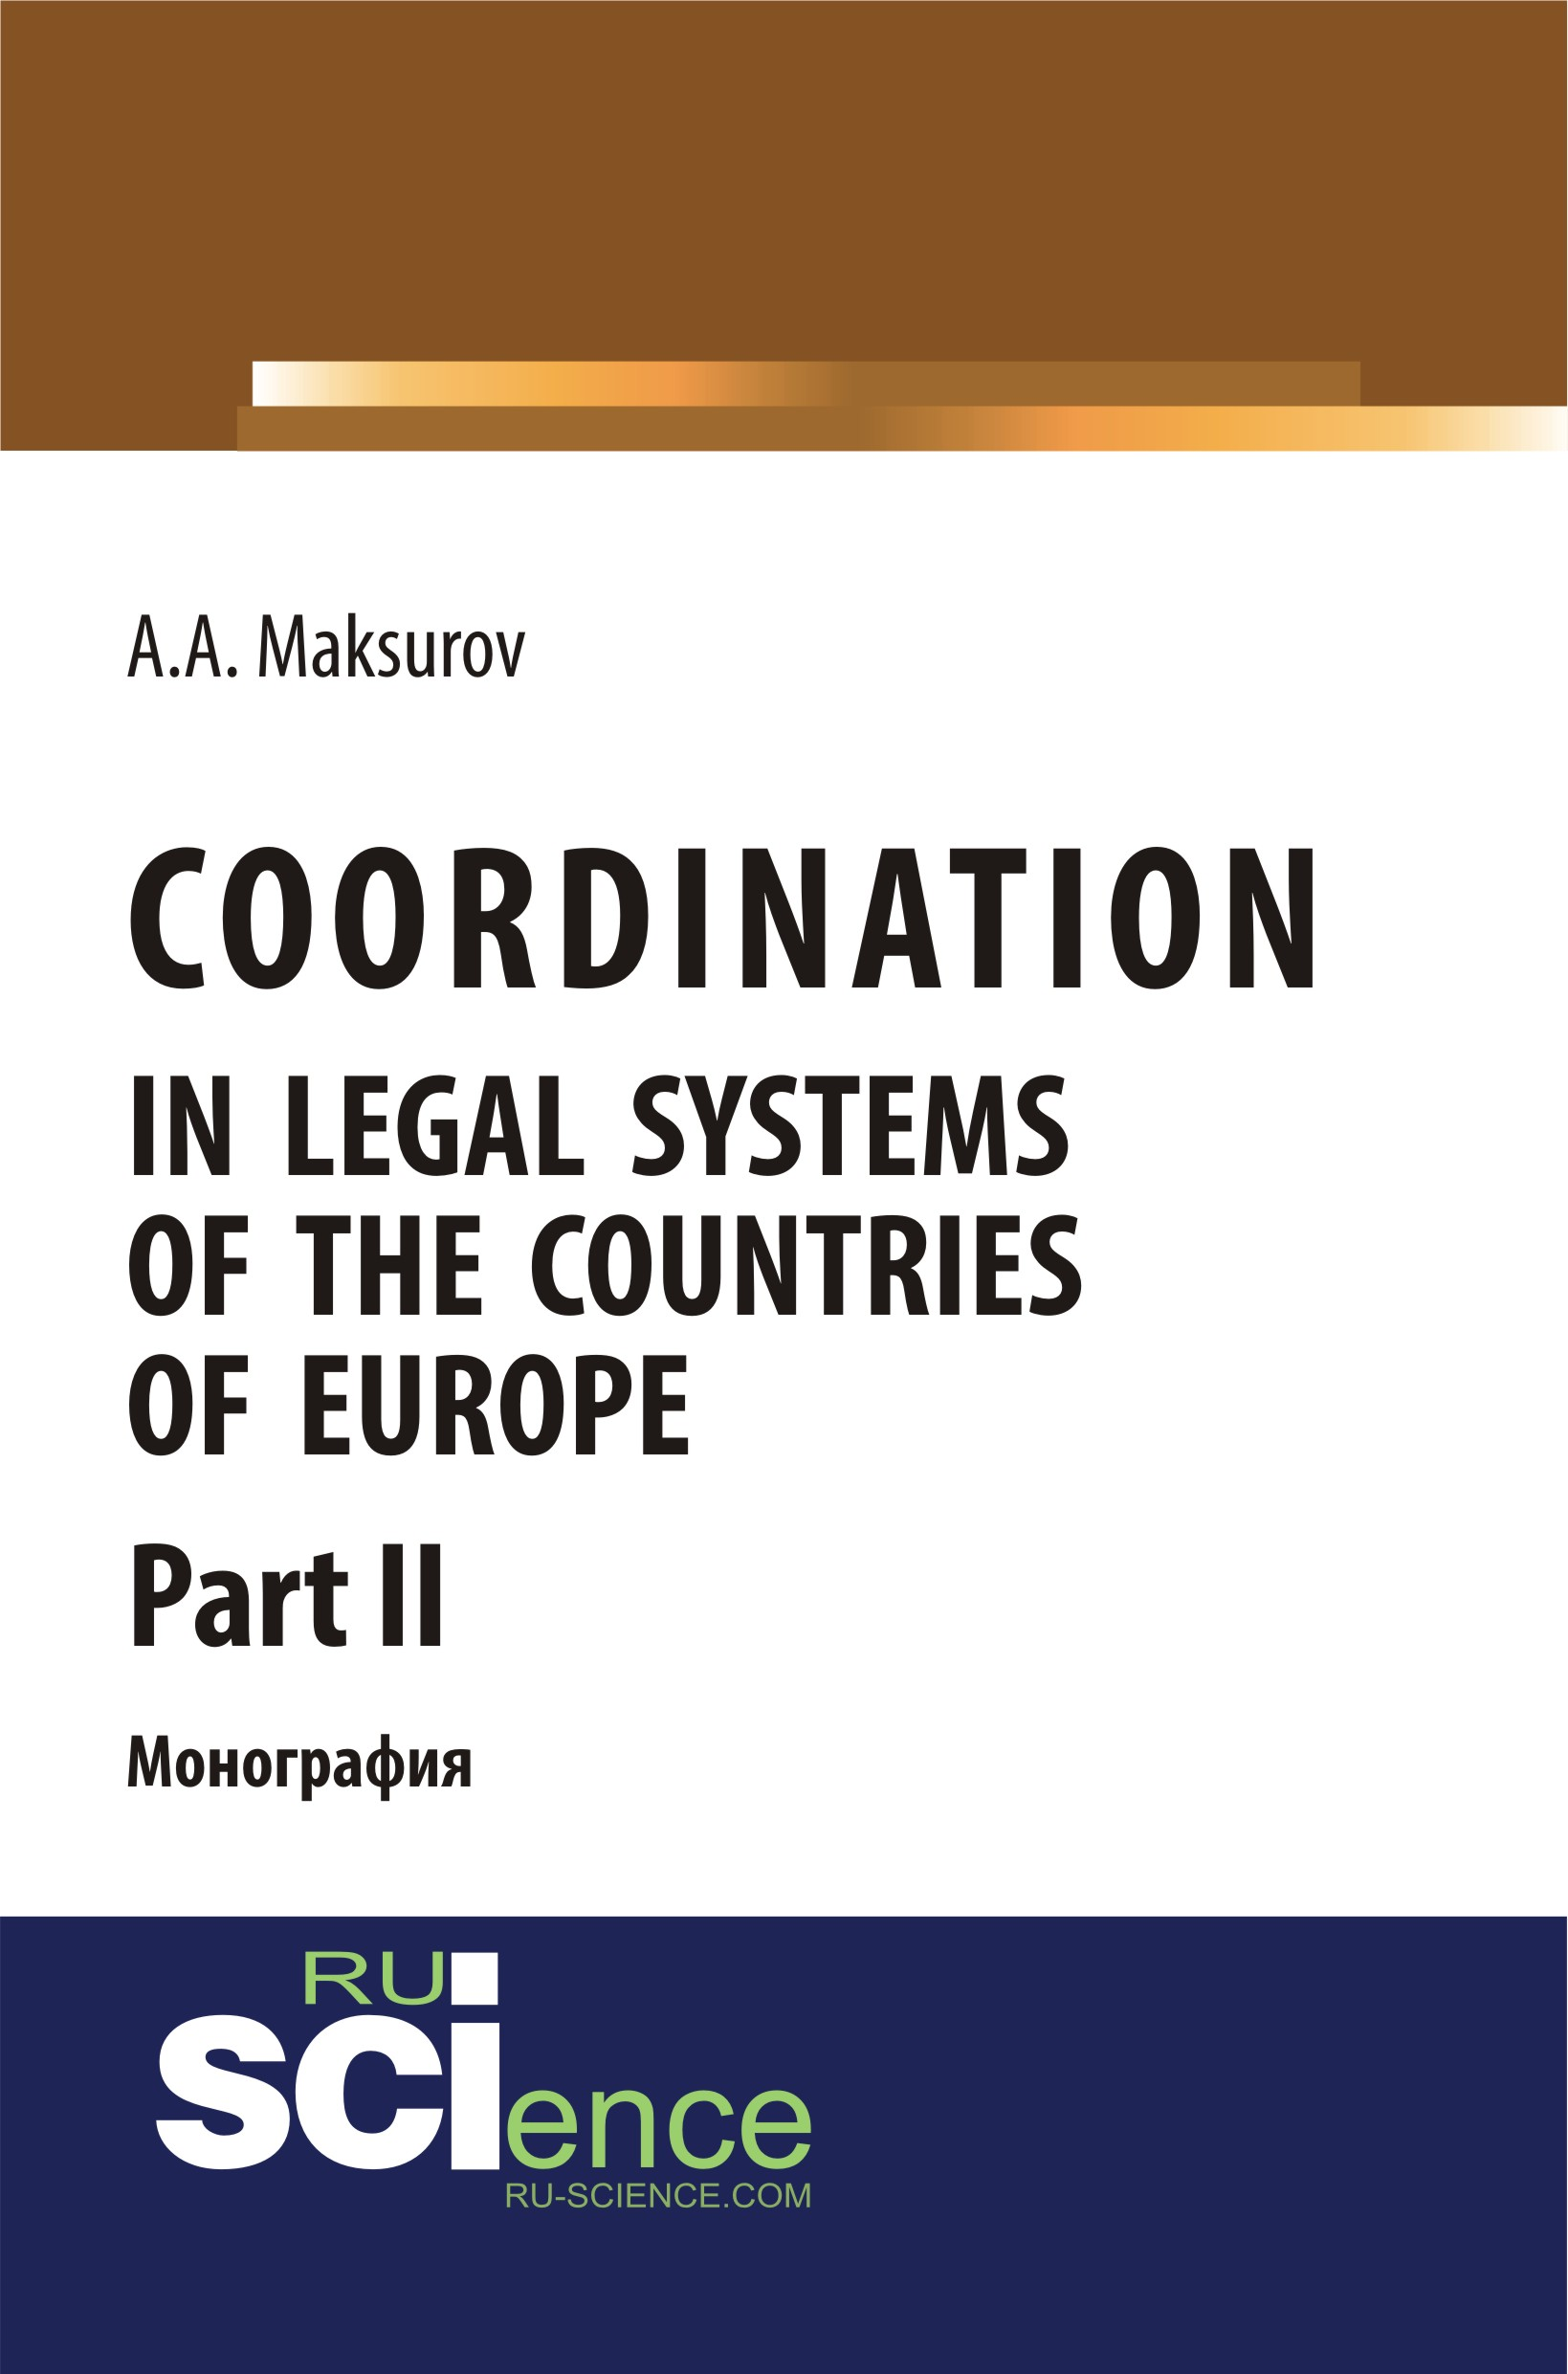 А. А. Максуров Coordination in legal systems of the countries of Europe. Part II john wilson index to the acts and proceedings of the general assembly of the church of scotland from the revolution to the present time